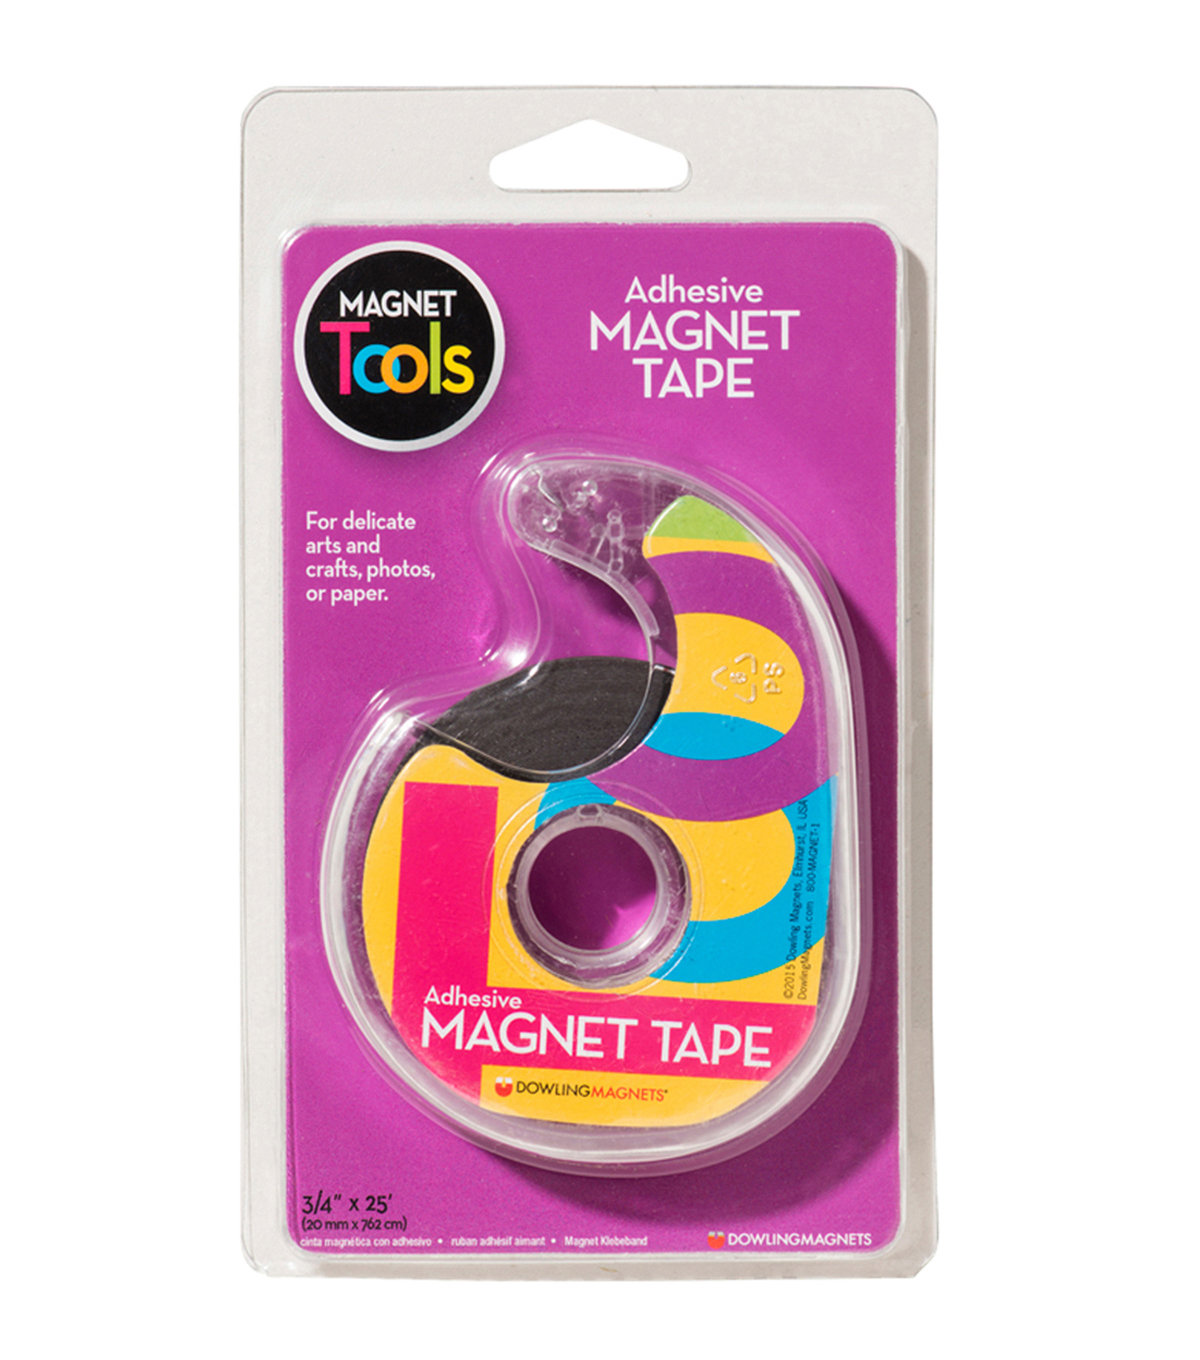 Dowling Magnets Magnet Tape 3/4X25 Adhesive Back, 6 Rolls